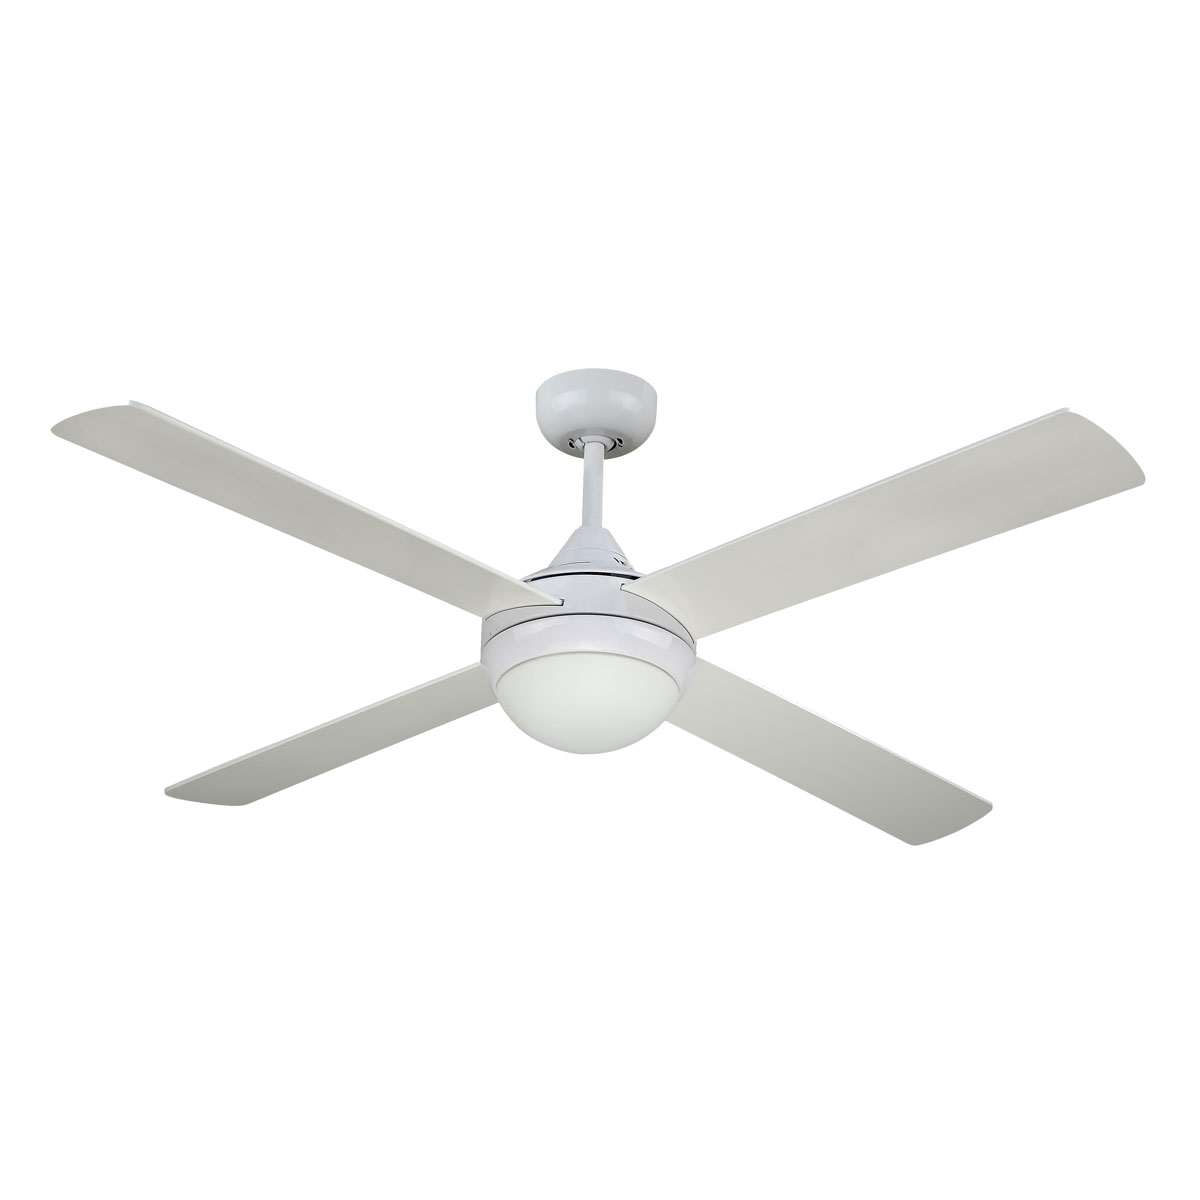 48 Inch Ceiling Fans With Lights